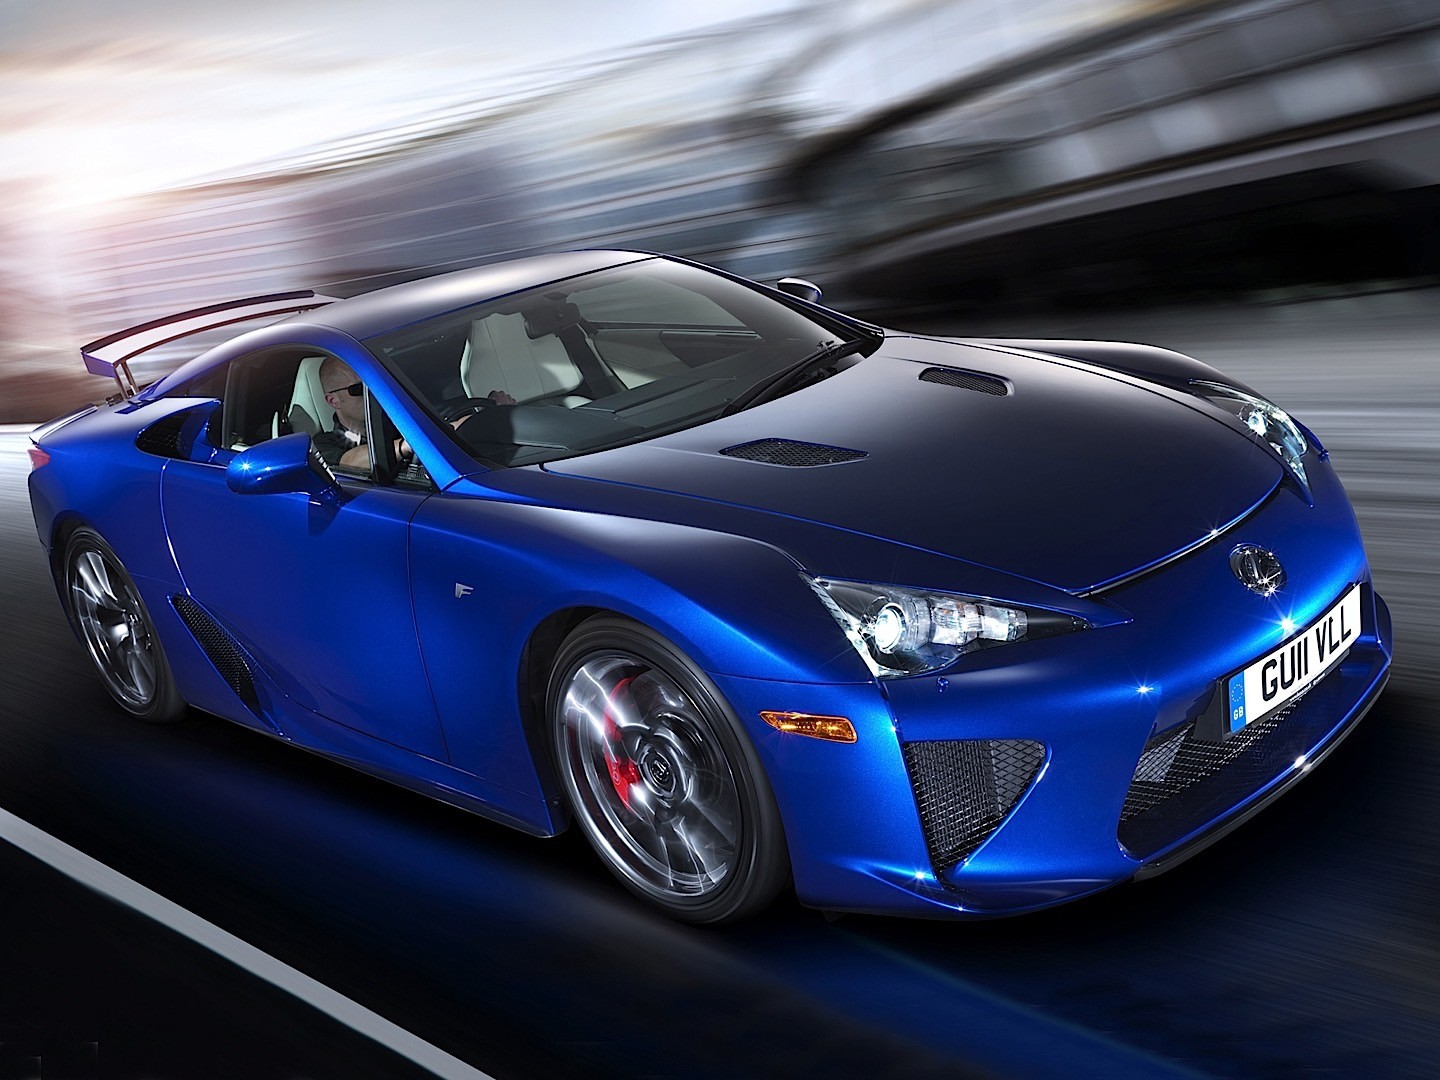 Acura Exotic Car >> LEXUS LFA - 2010, 2011, 2012, 2013 - autoevolution